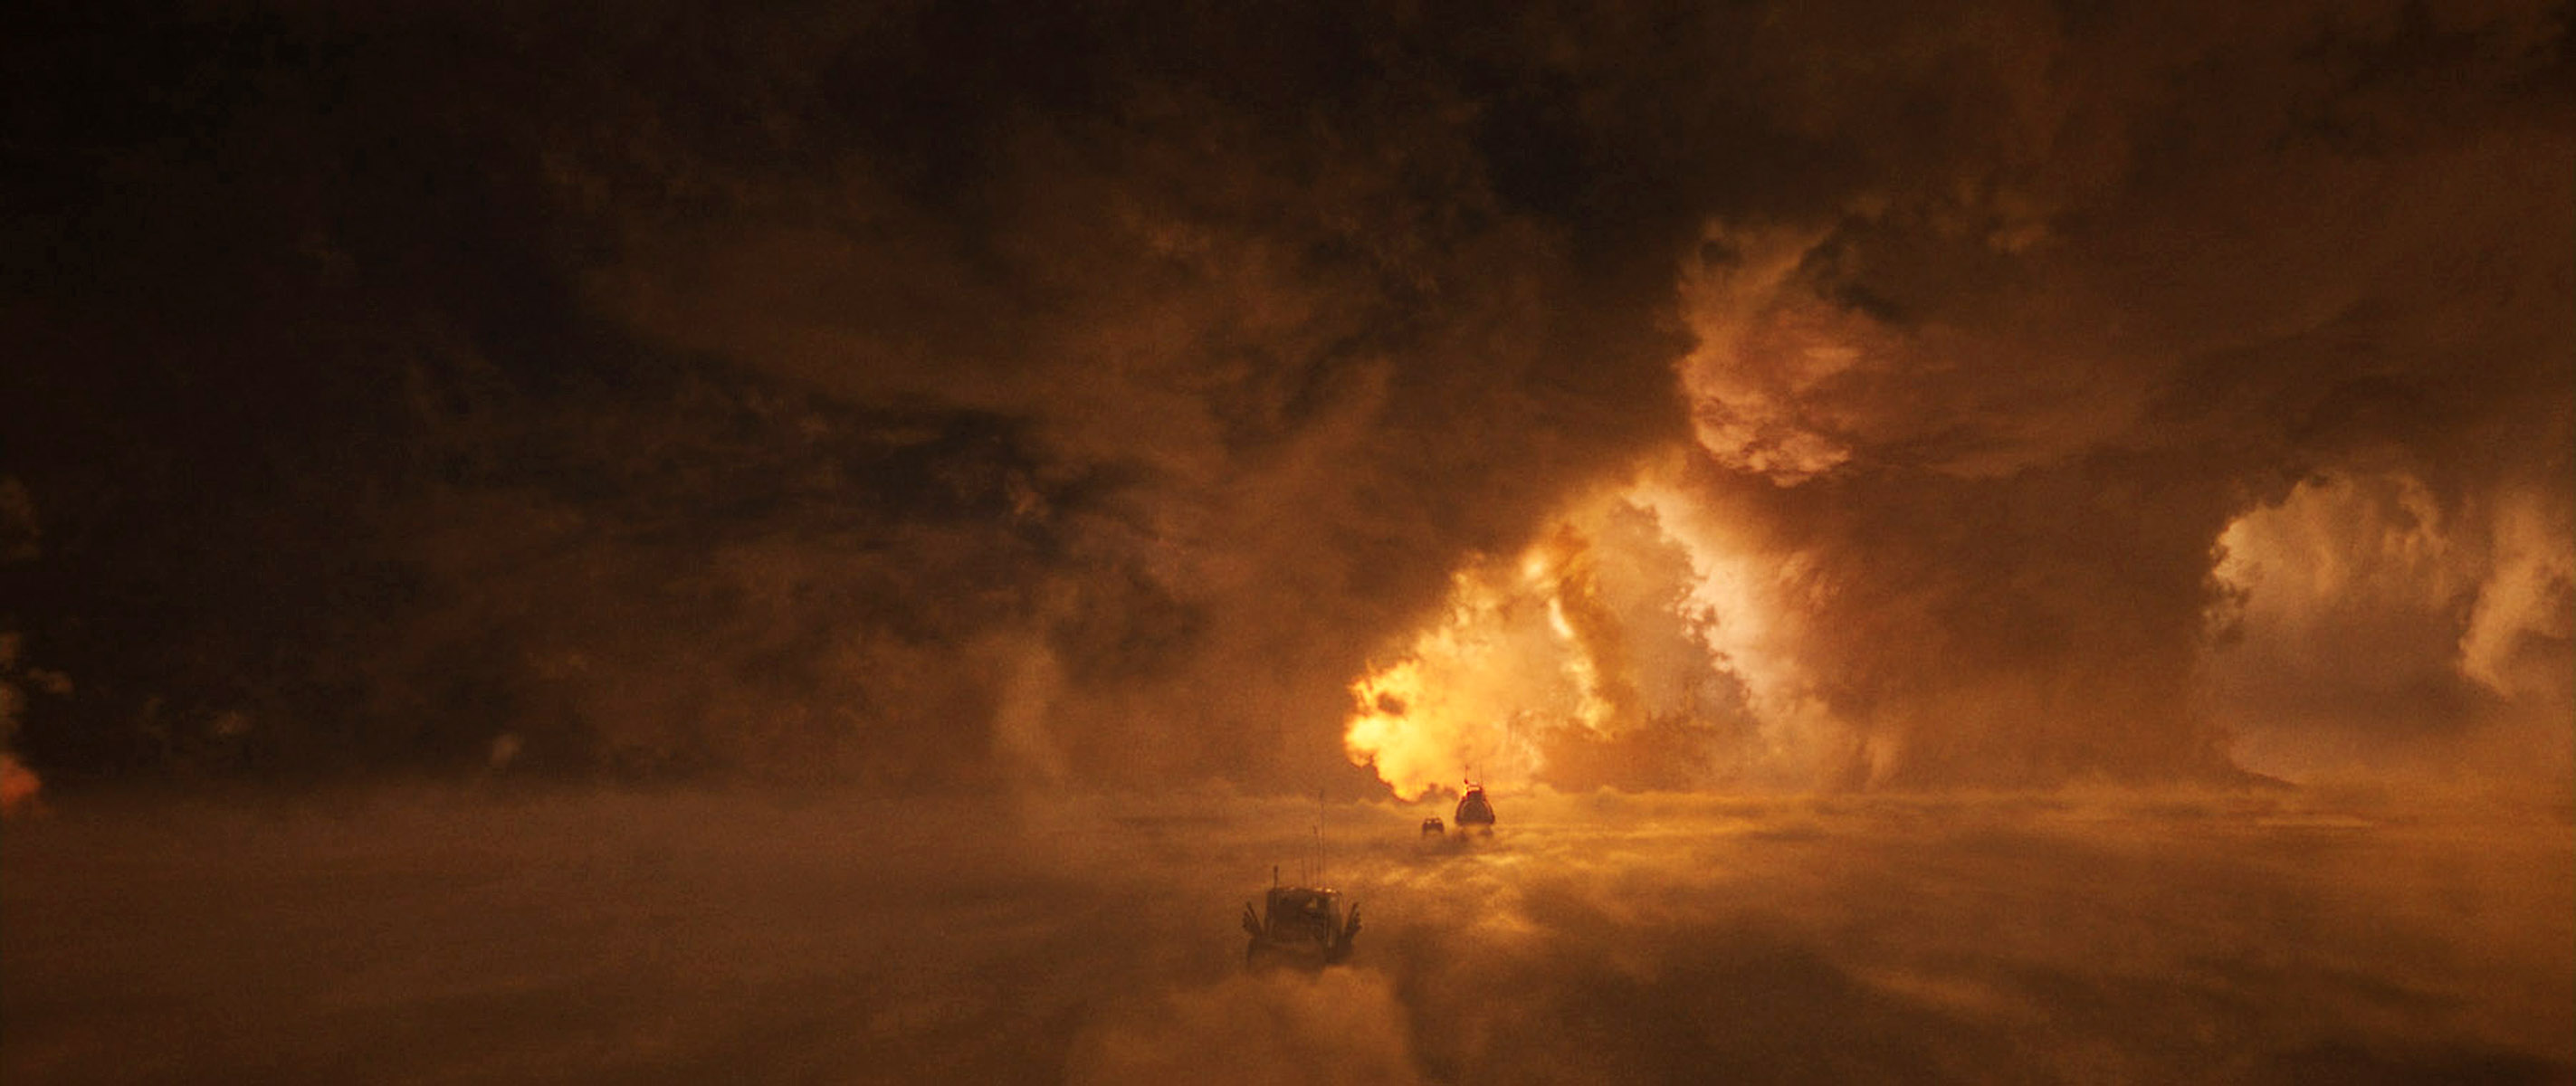 Beautiful Fall Paintings Wallpapers Mad Max Fury Road Vfx Team Takes Us Inside The Toxic